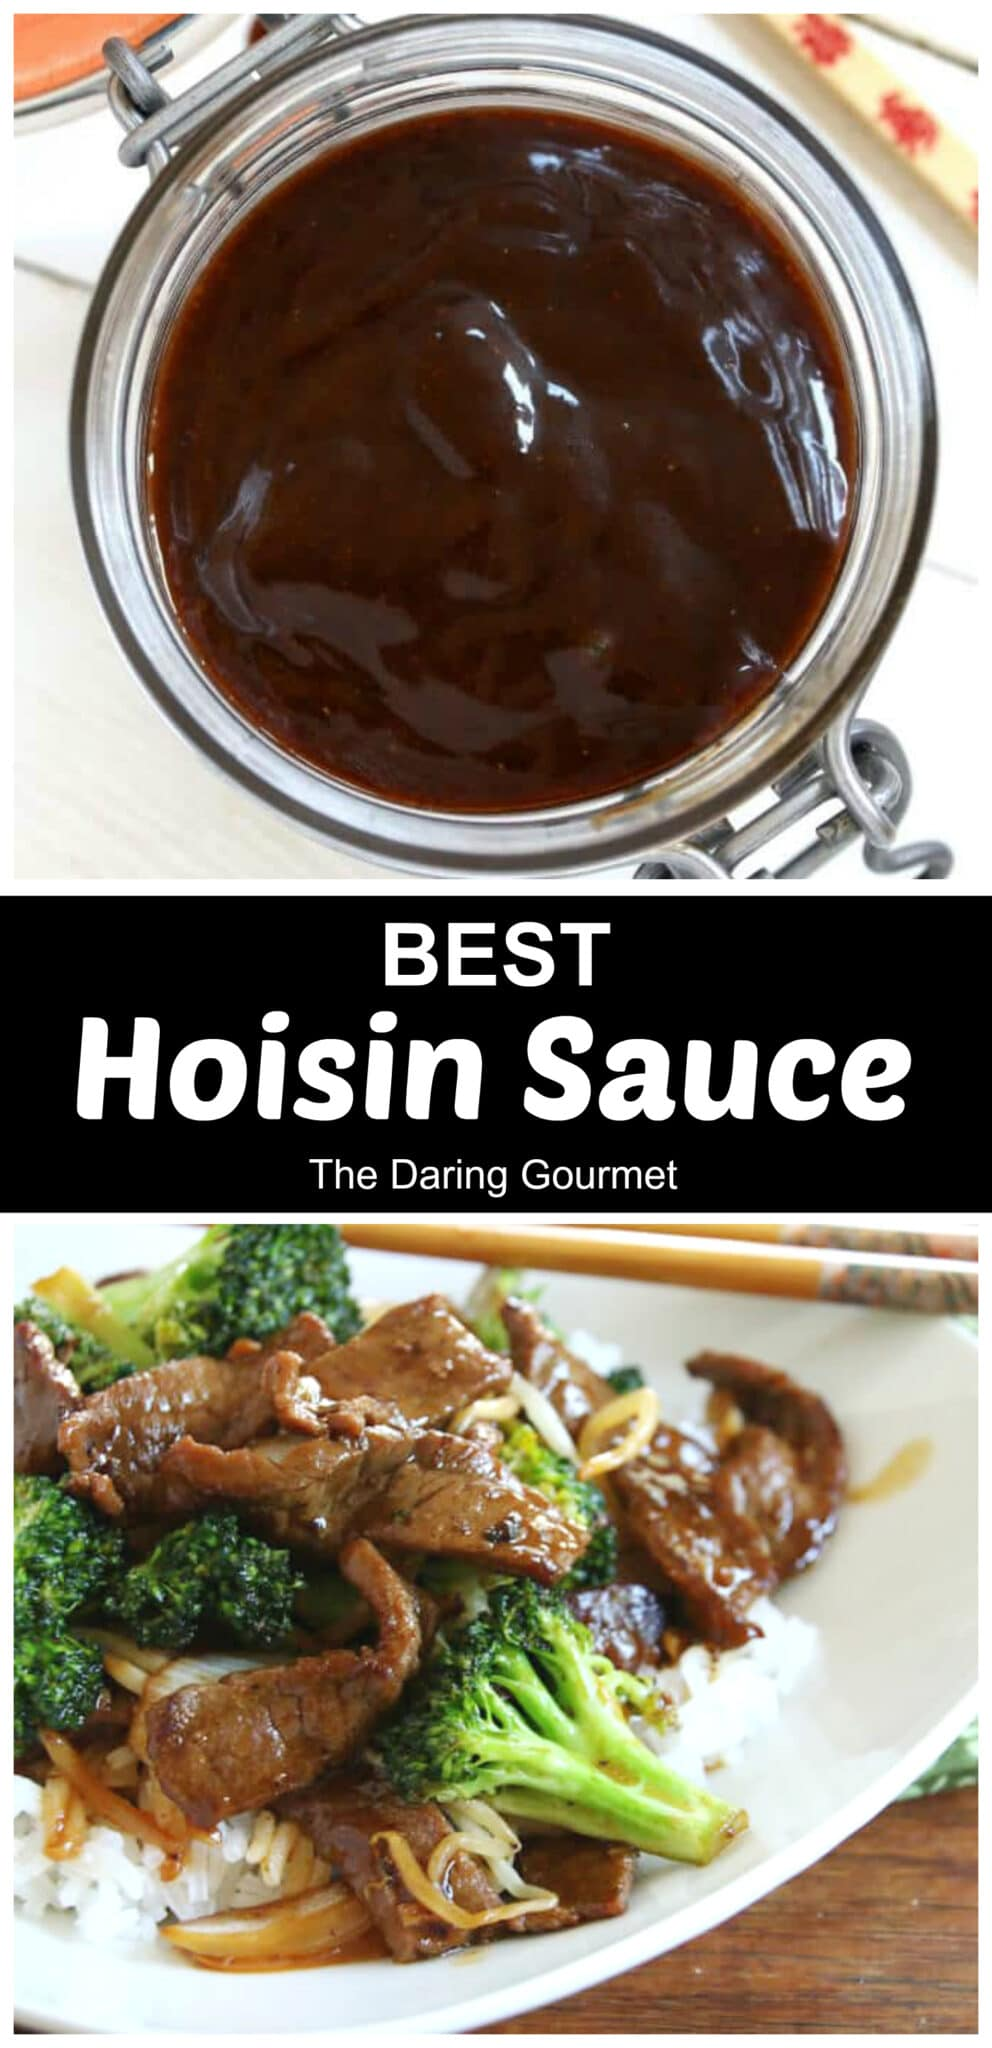 hoisin sauce recipe best homemade authentic traditional Chinese sauce